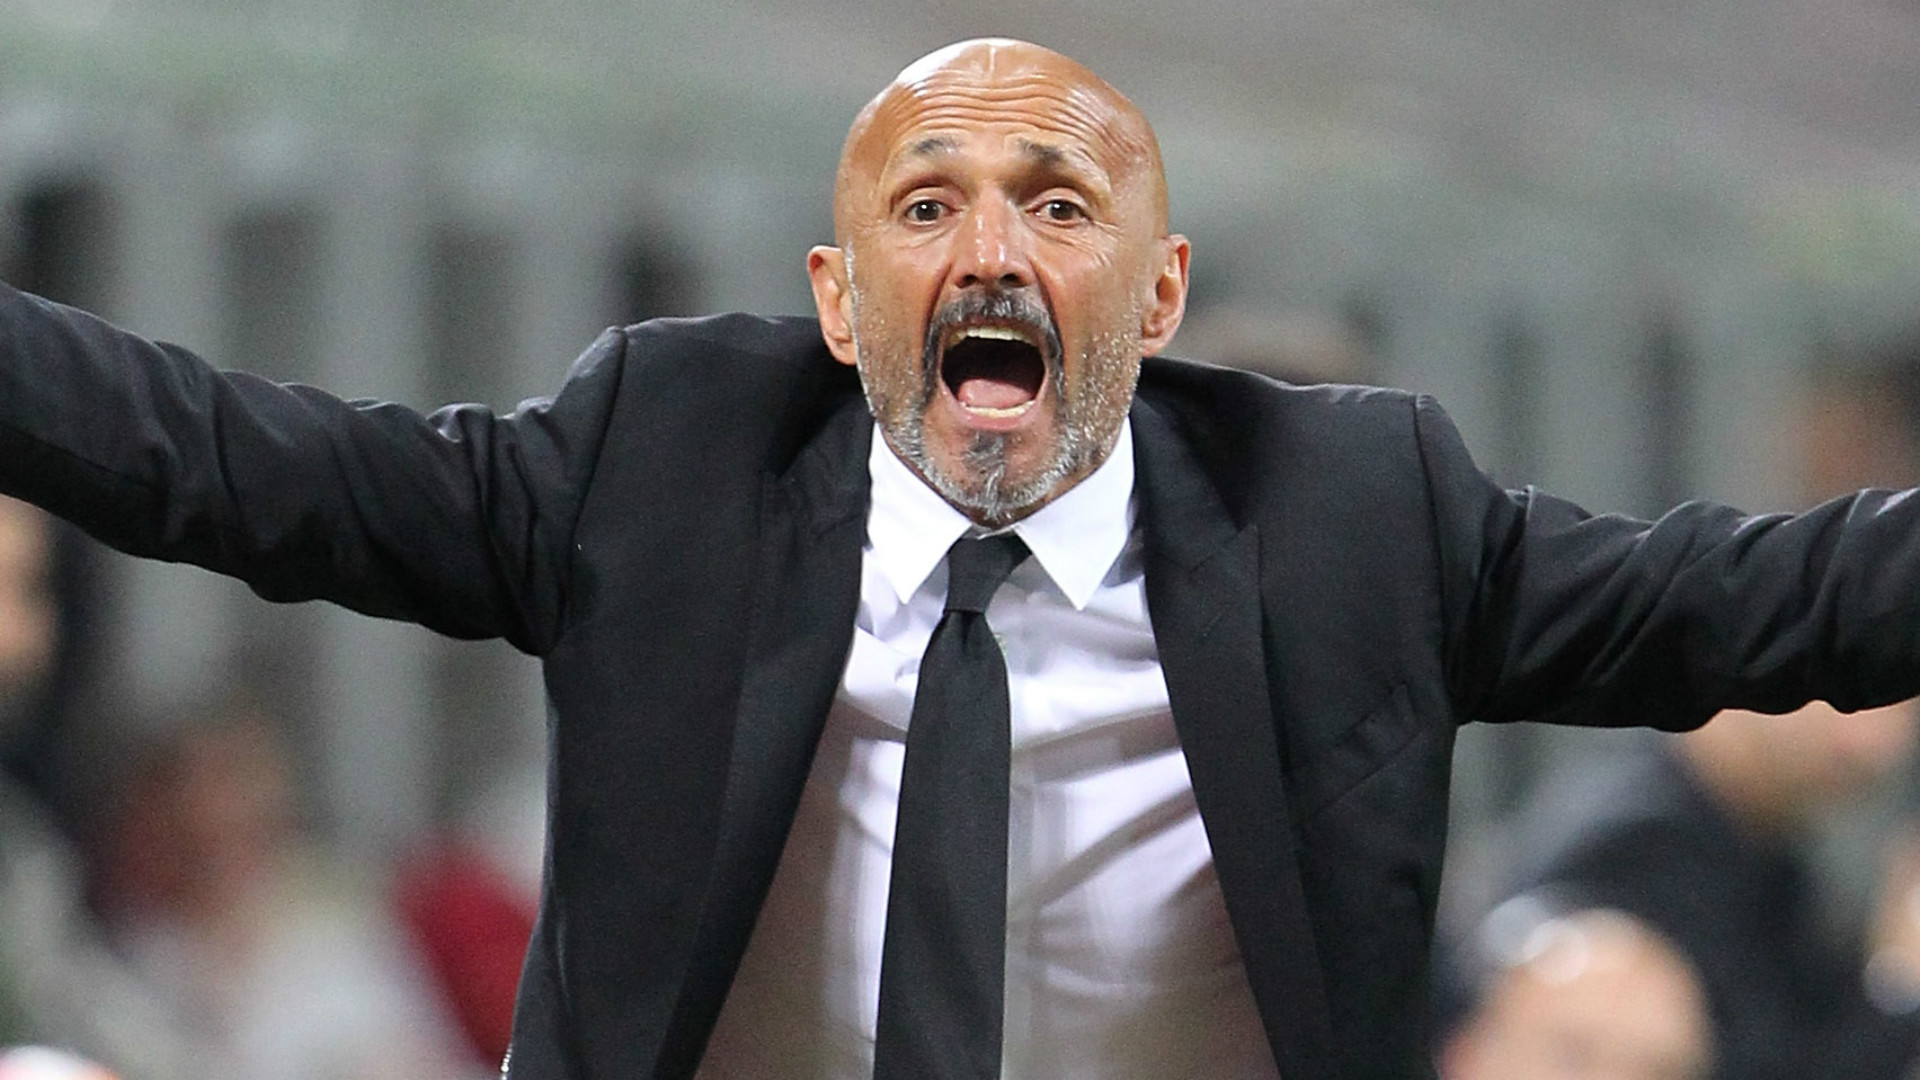 Roma part company with head coach after 16 months